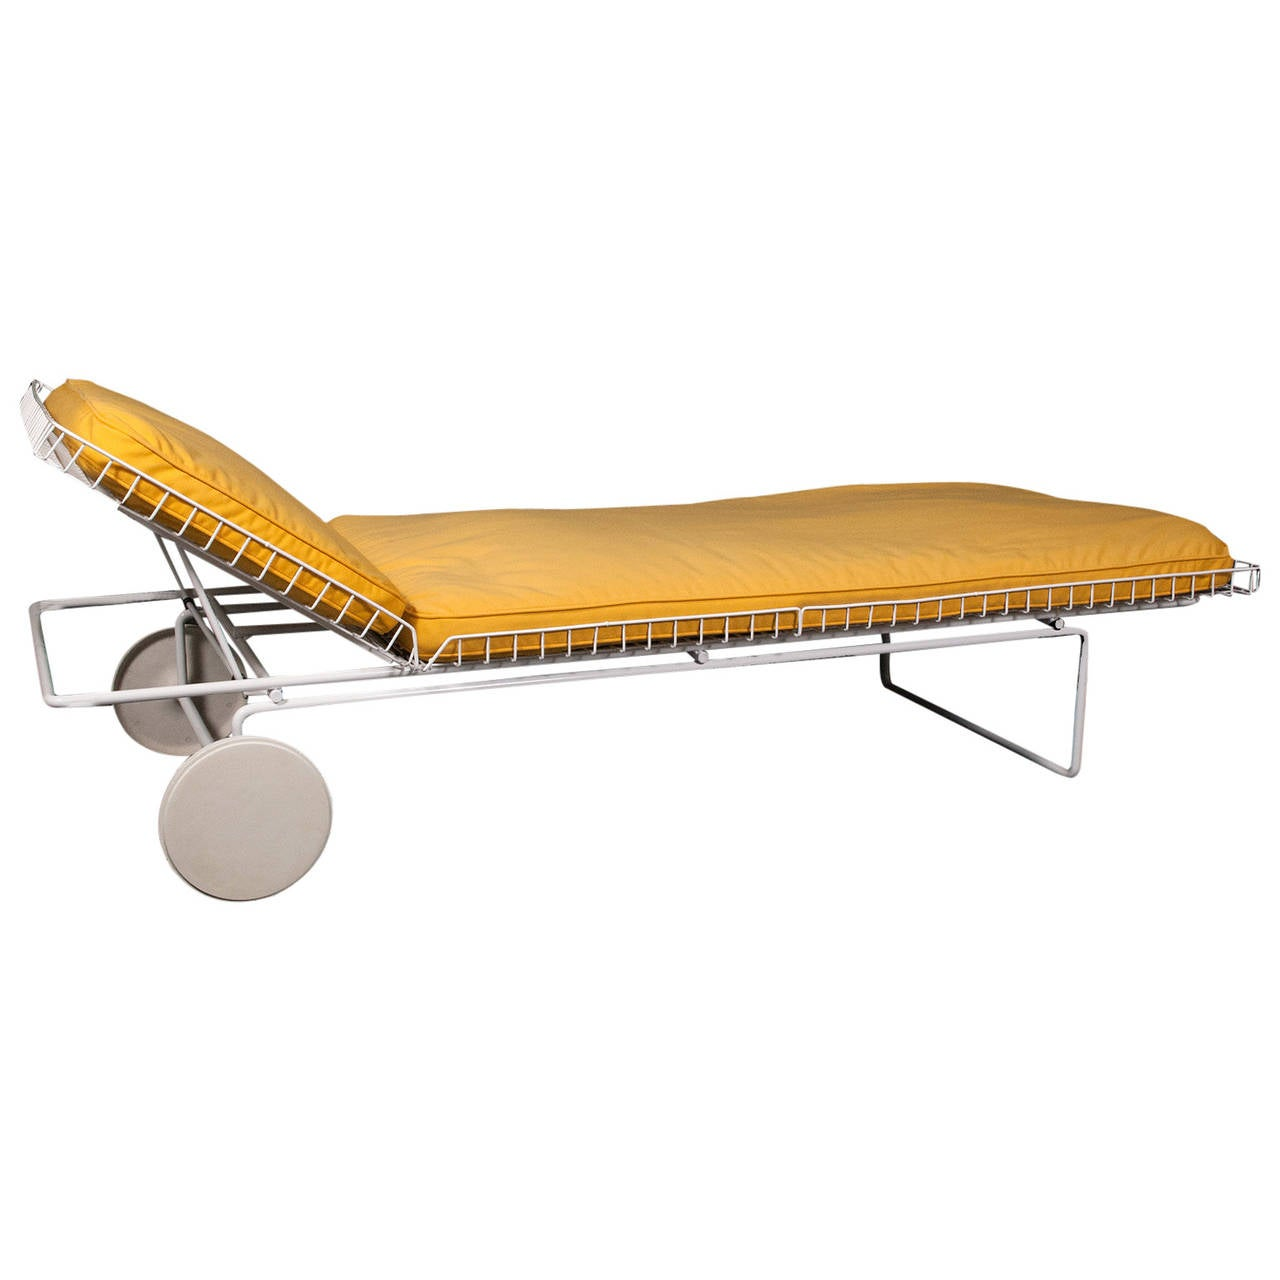 Early richard schultz model 715 chaise longue for knoll for Chaise modele